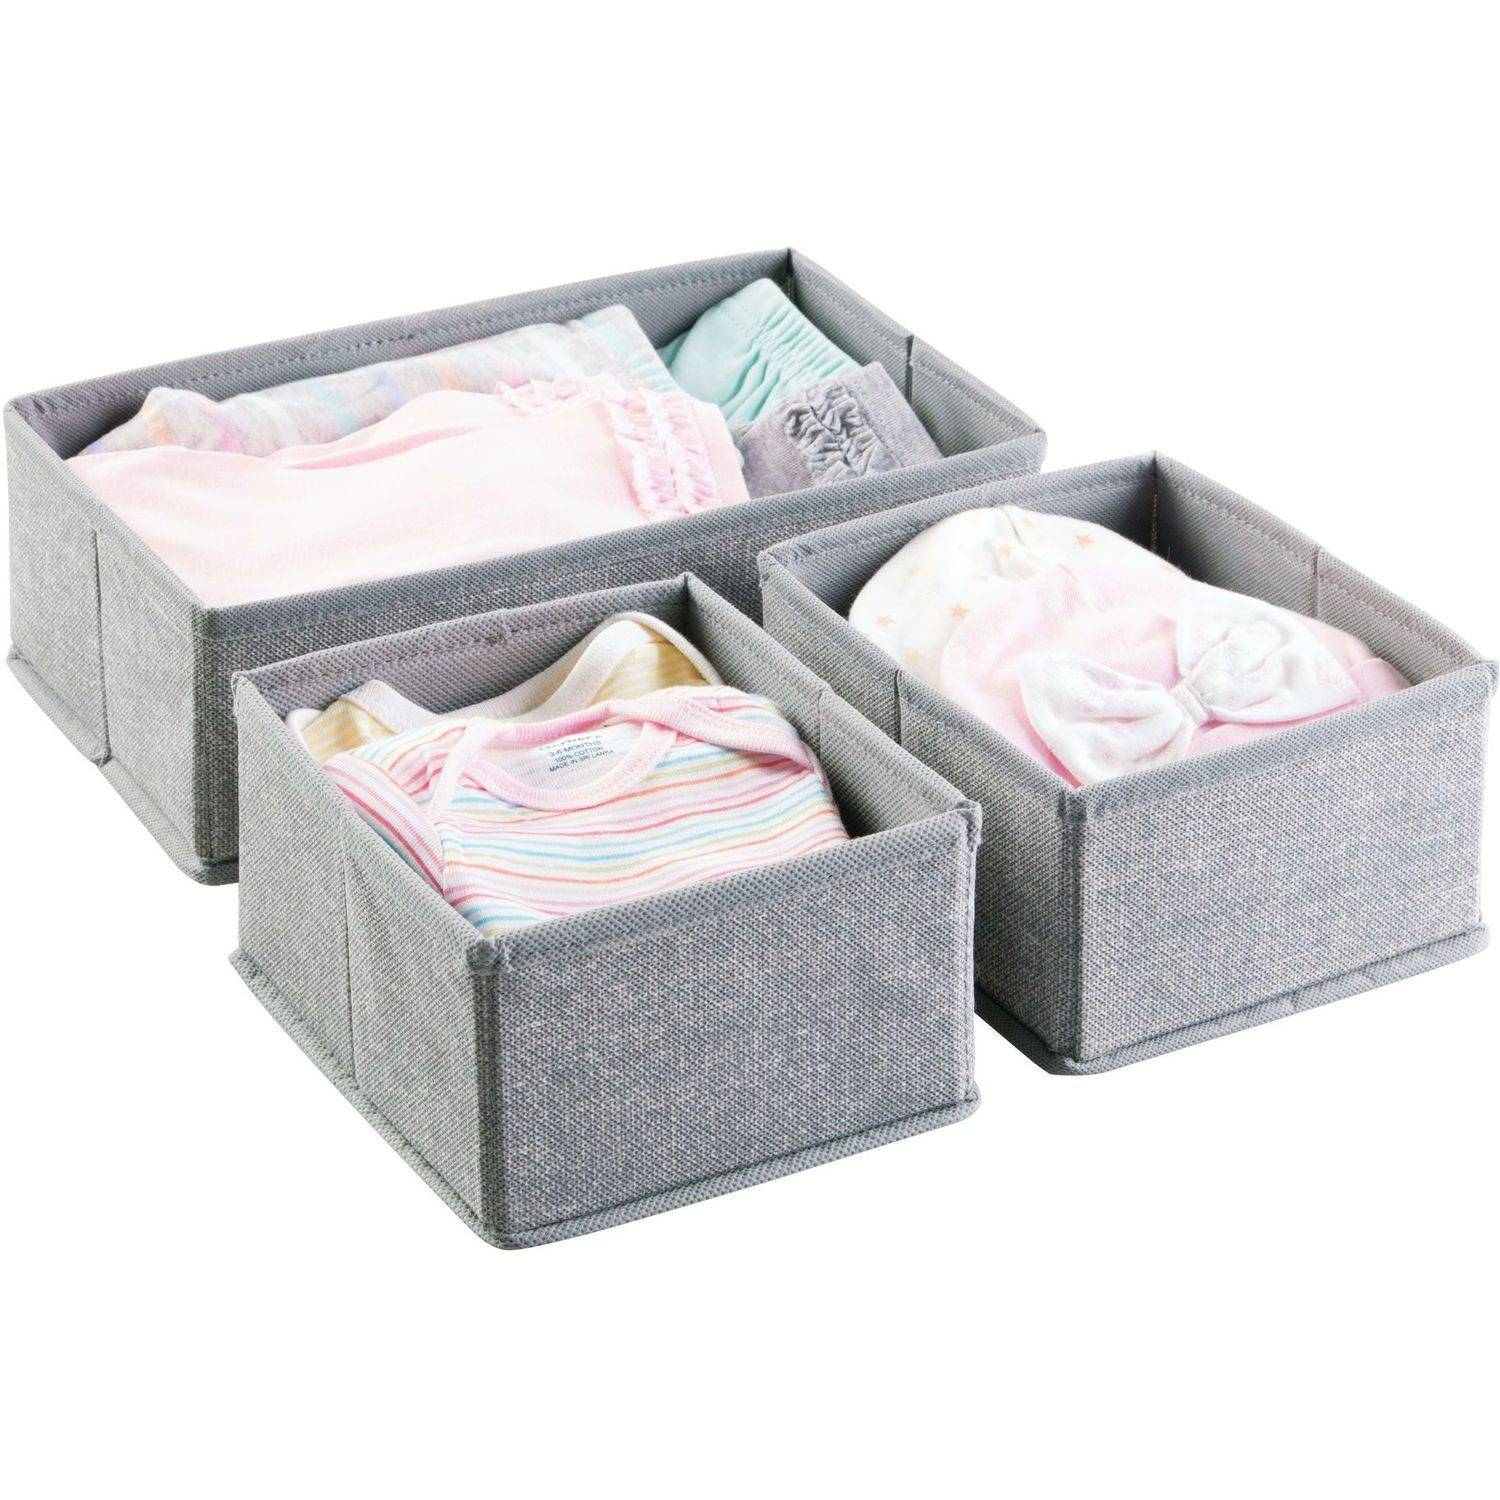 InterDesign Aldo Drawer Organizer, 3S (Set of 3), Grey